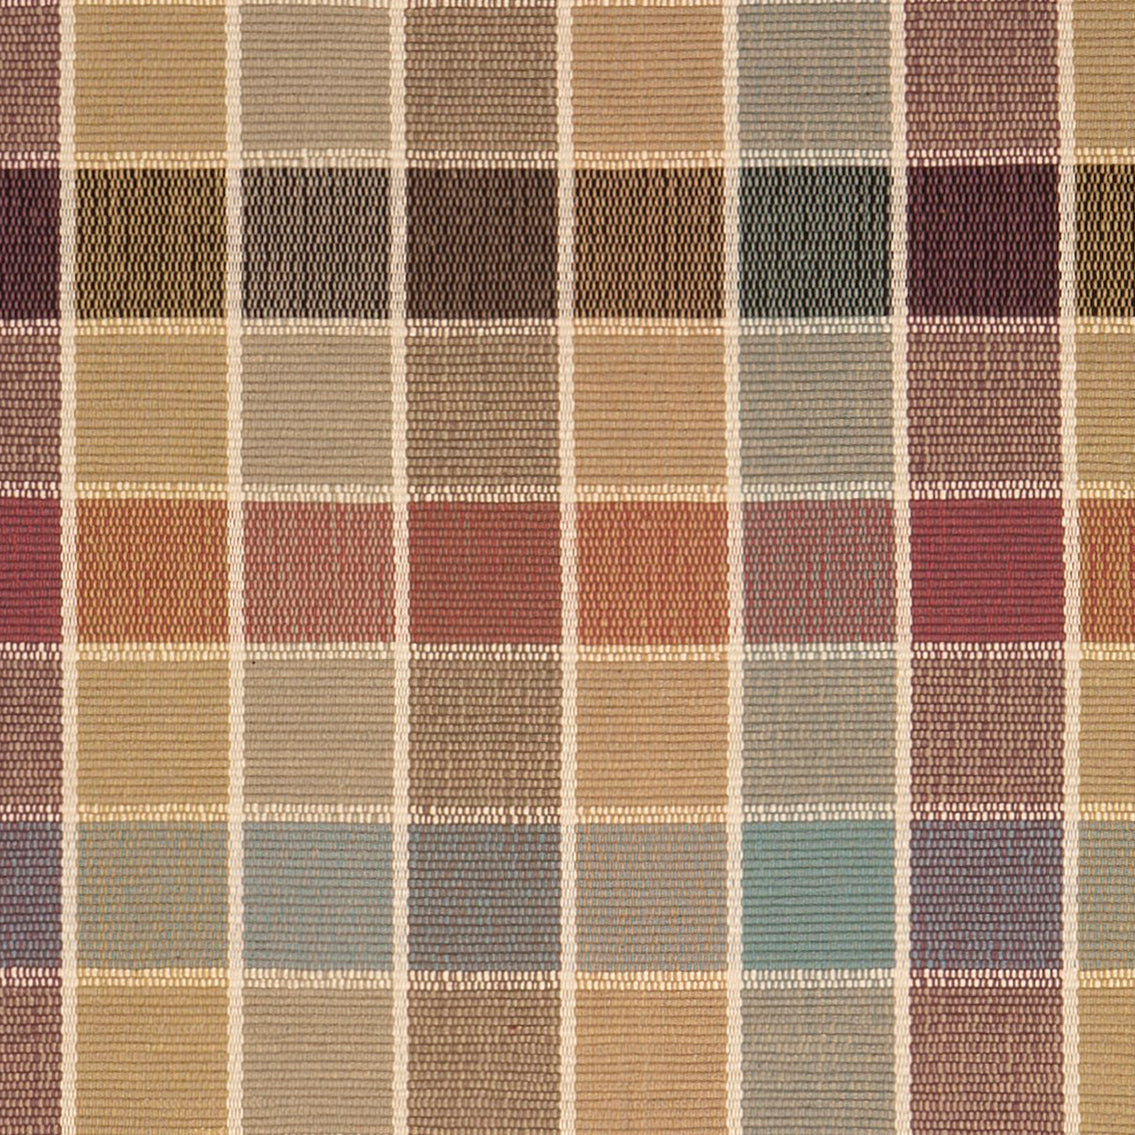 Eaton Square #43-B is a traditional checked pattern in rich, rustic hues of gold, plum, teal, sage and beige with cream lines. Beautiful with fringed or bound ends, this design is offered in almost every size from 30 inch wide runners to room sized area rugs.